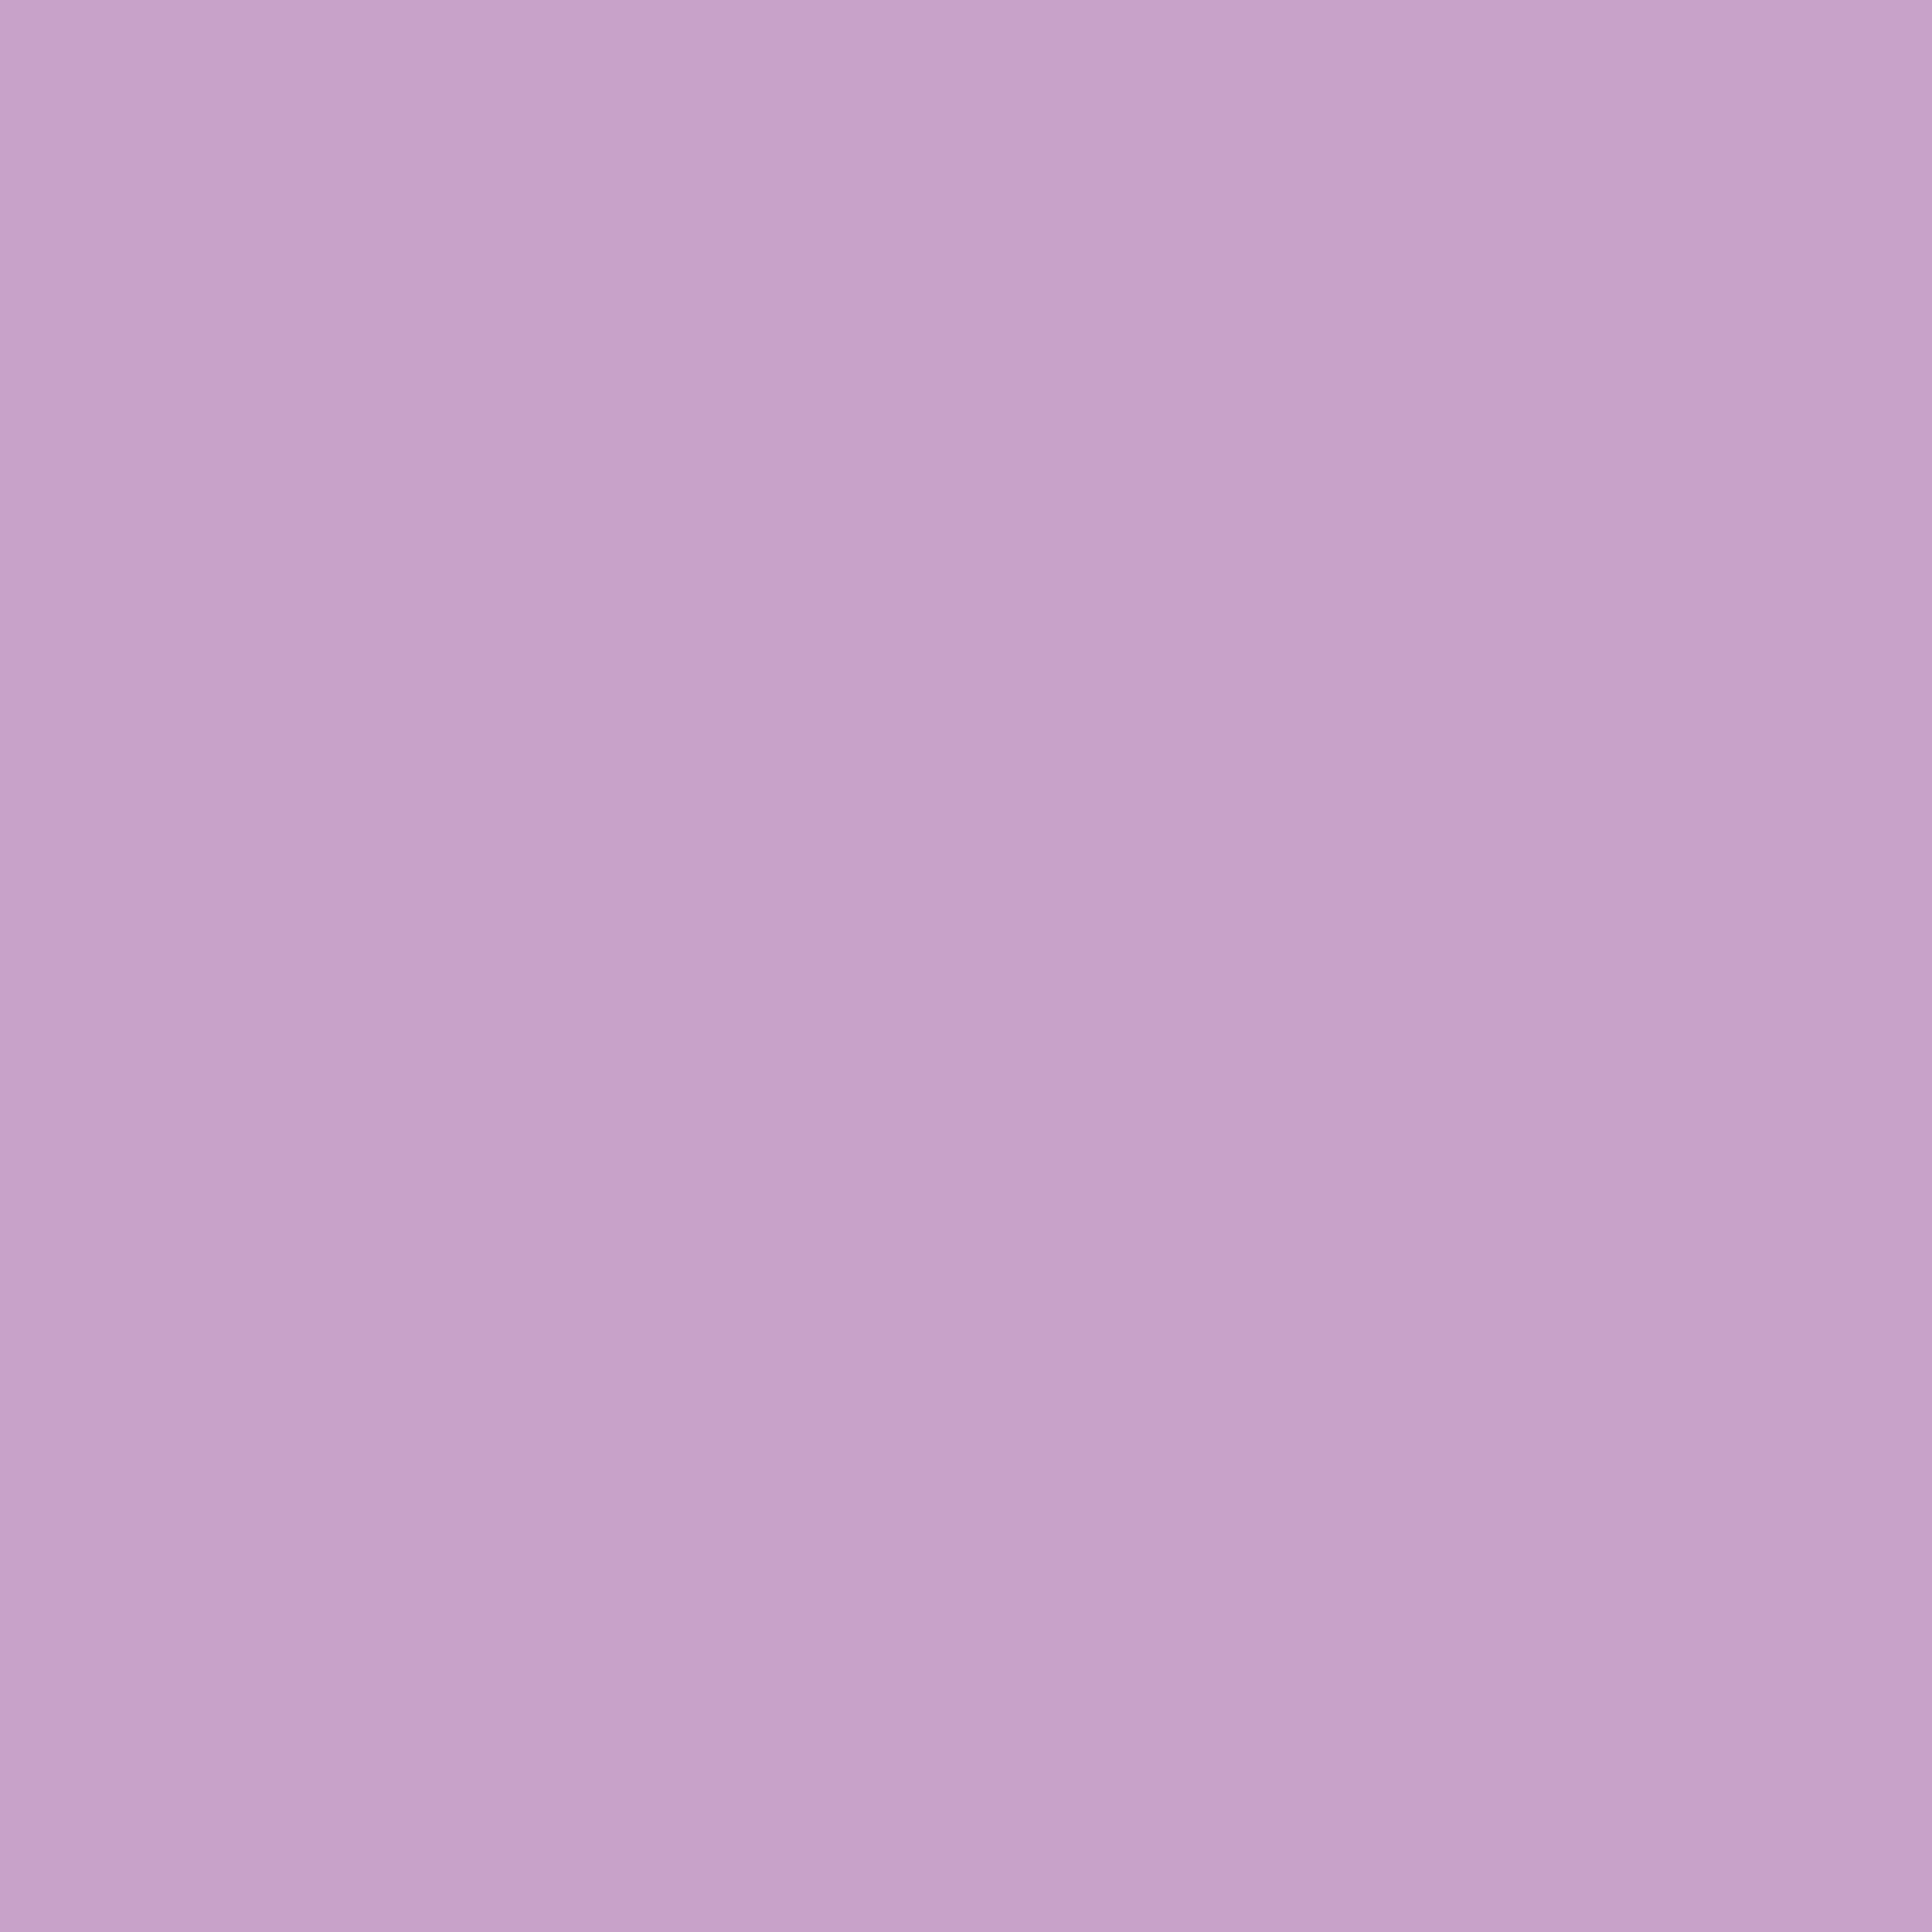 2048x2048 Lilac Solid Color Background